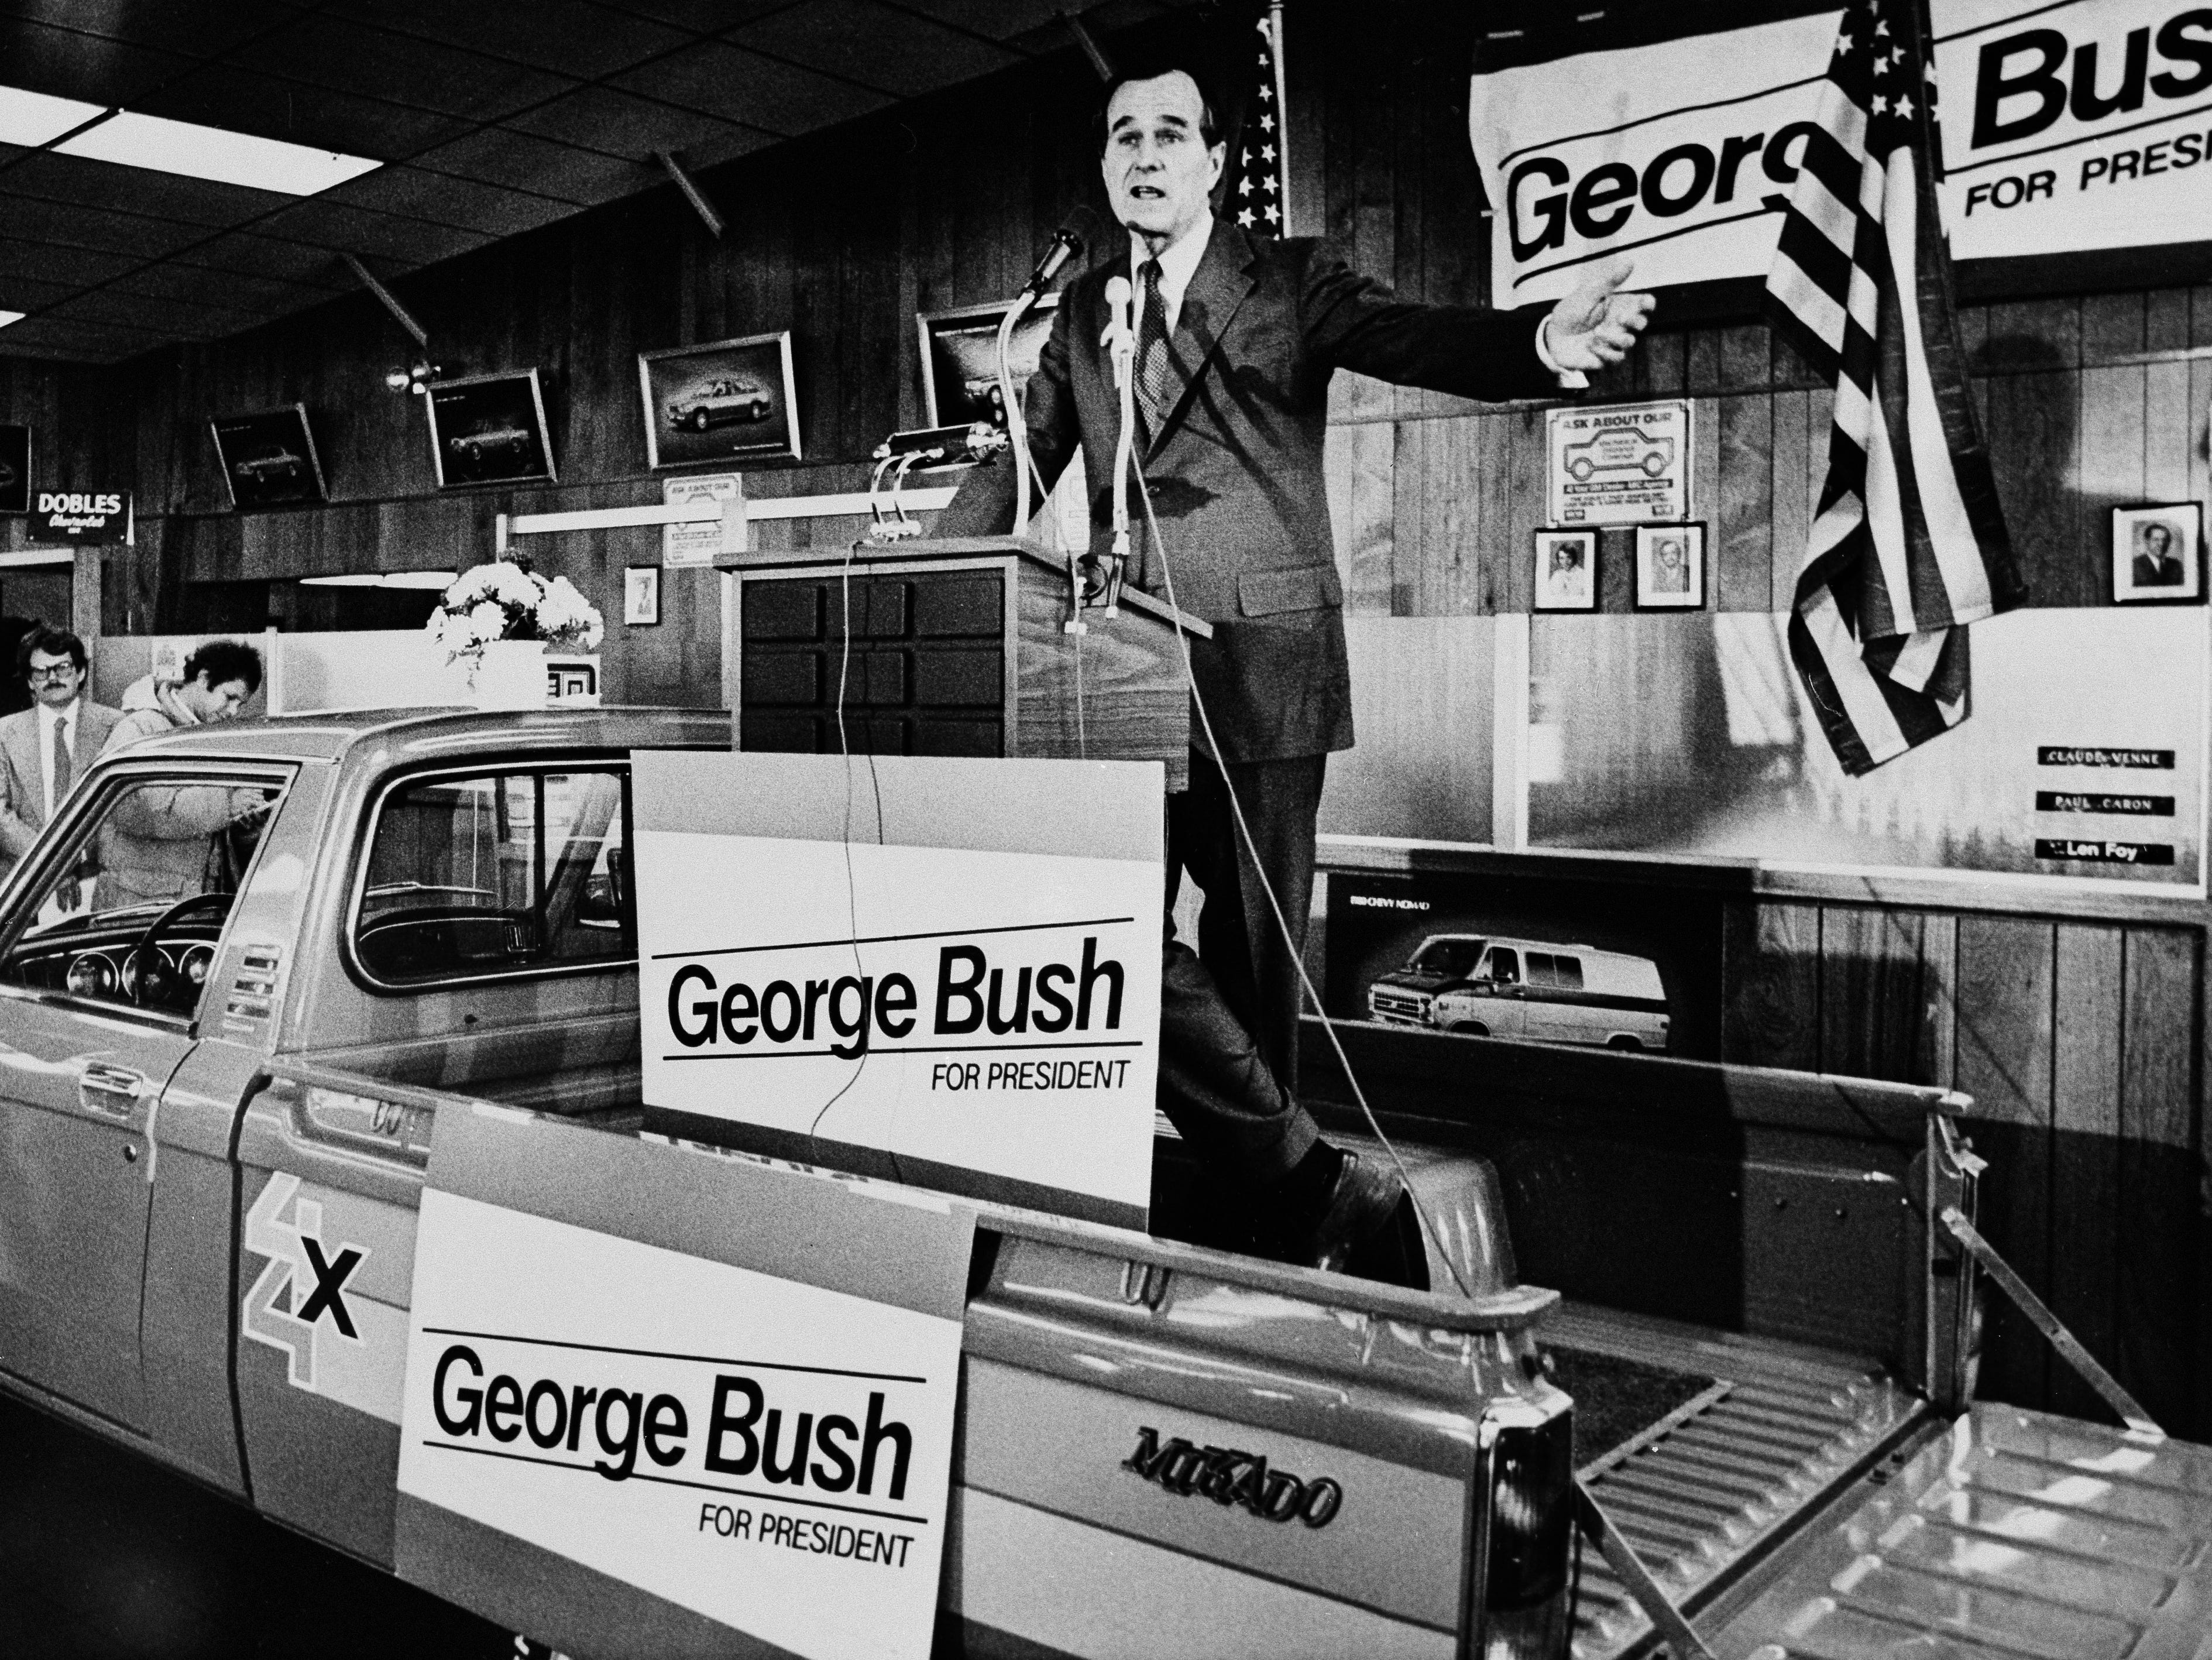 Presidential hopeful George Bush takes his New Hampshire campaign to a new car dealer in Manchester, N.H., Feb. 18, 1980, where the soapbox gave way to a pick-up truck for a speaking platform. Bush said he is riding high after Sunday's victory in the Puerto Rico primary, but still doesn't consider himself the frontrunner in the Republican race for the White House. (AP Photo/Tim Savard)